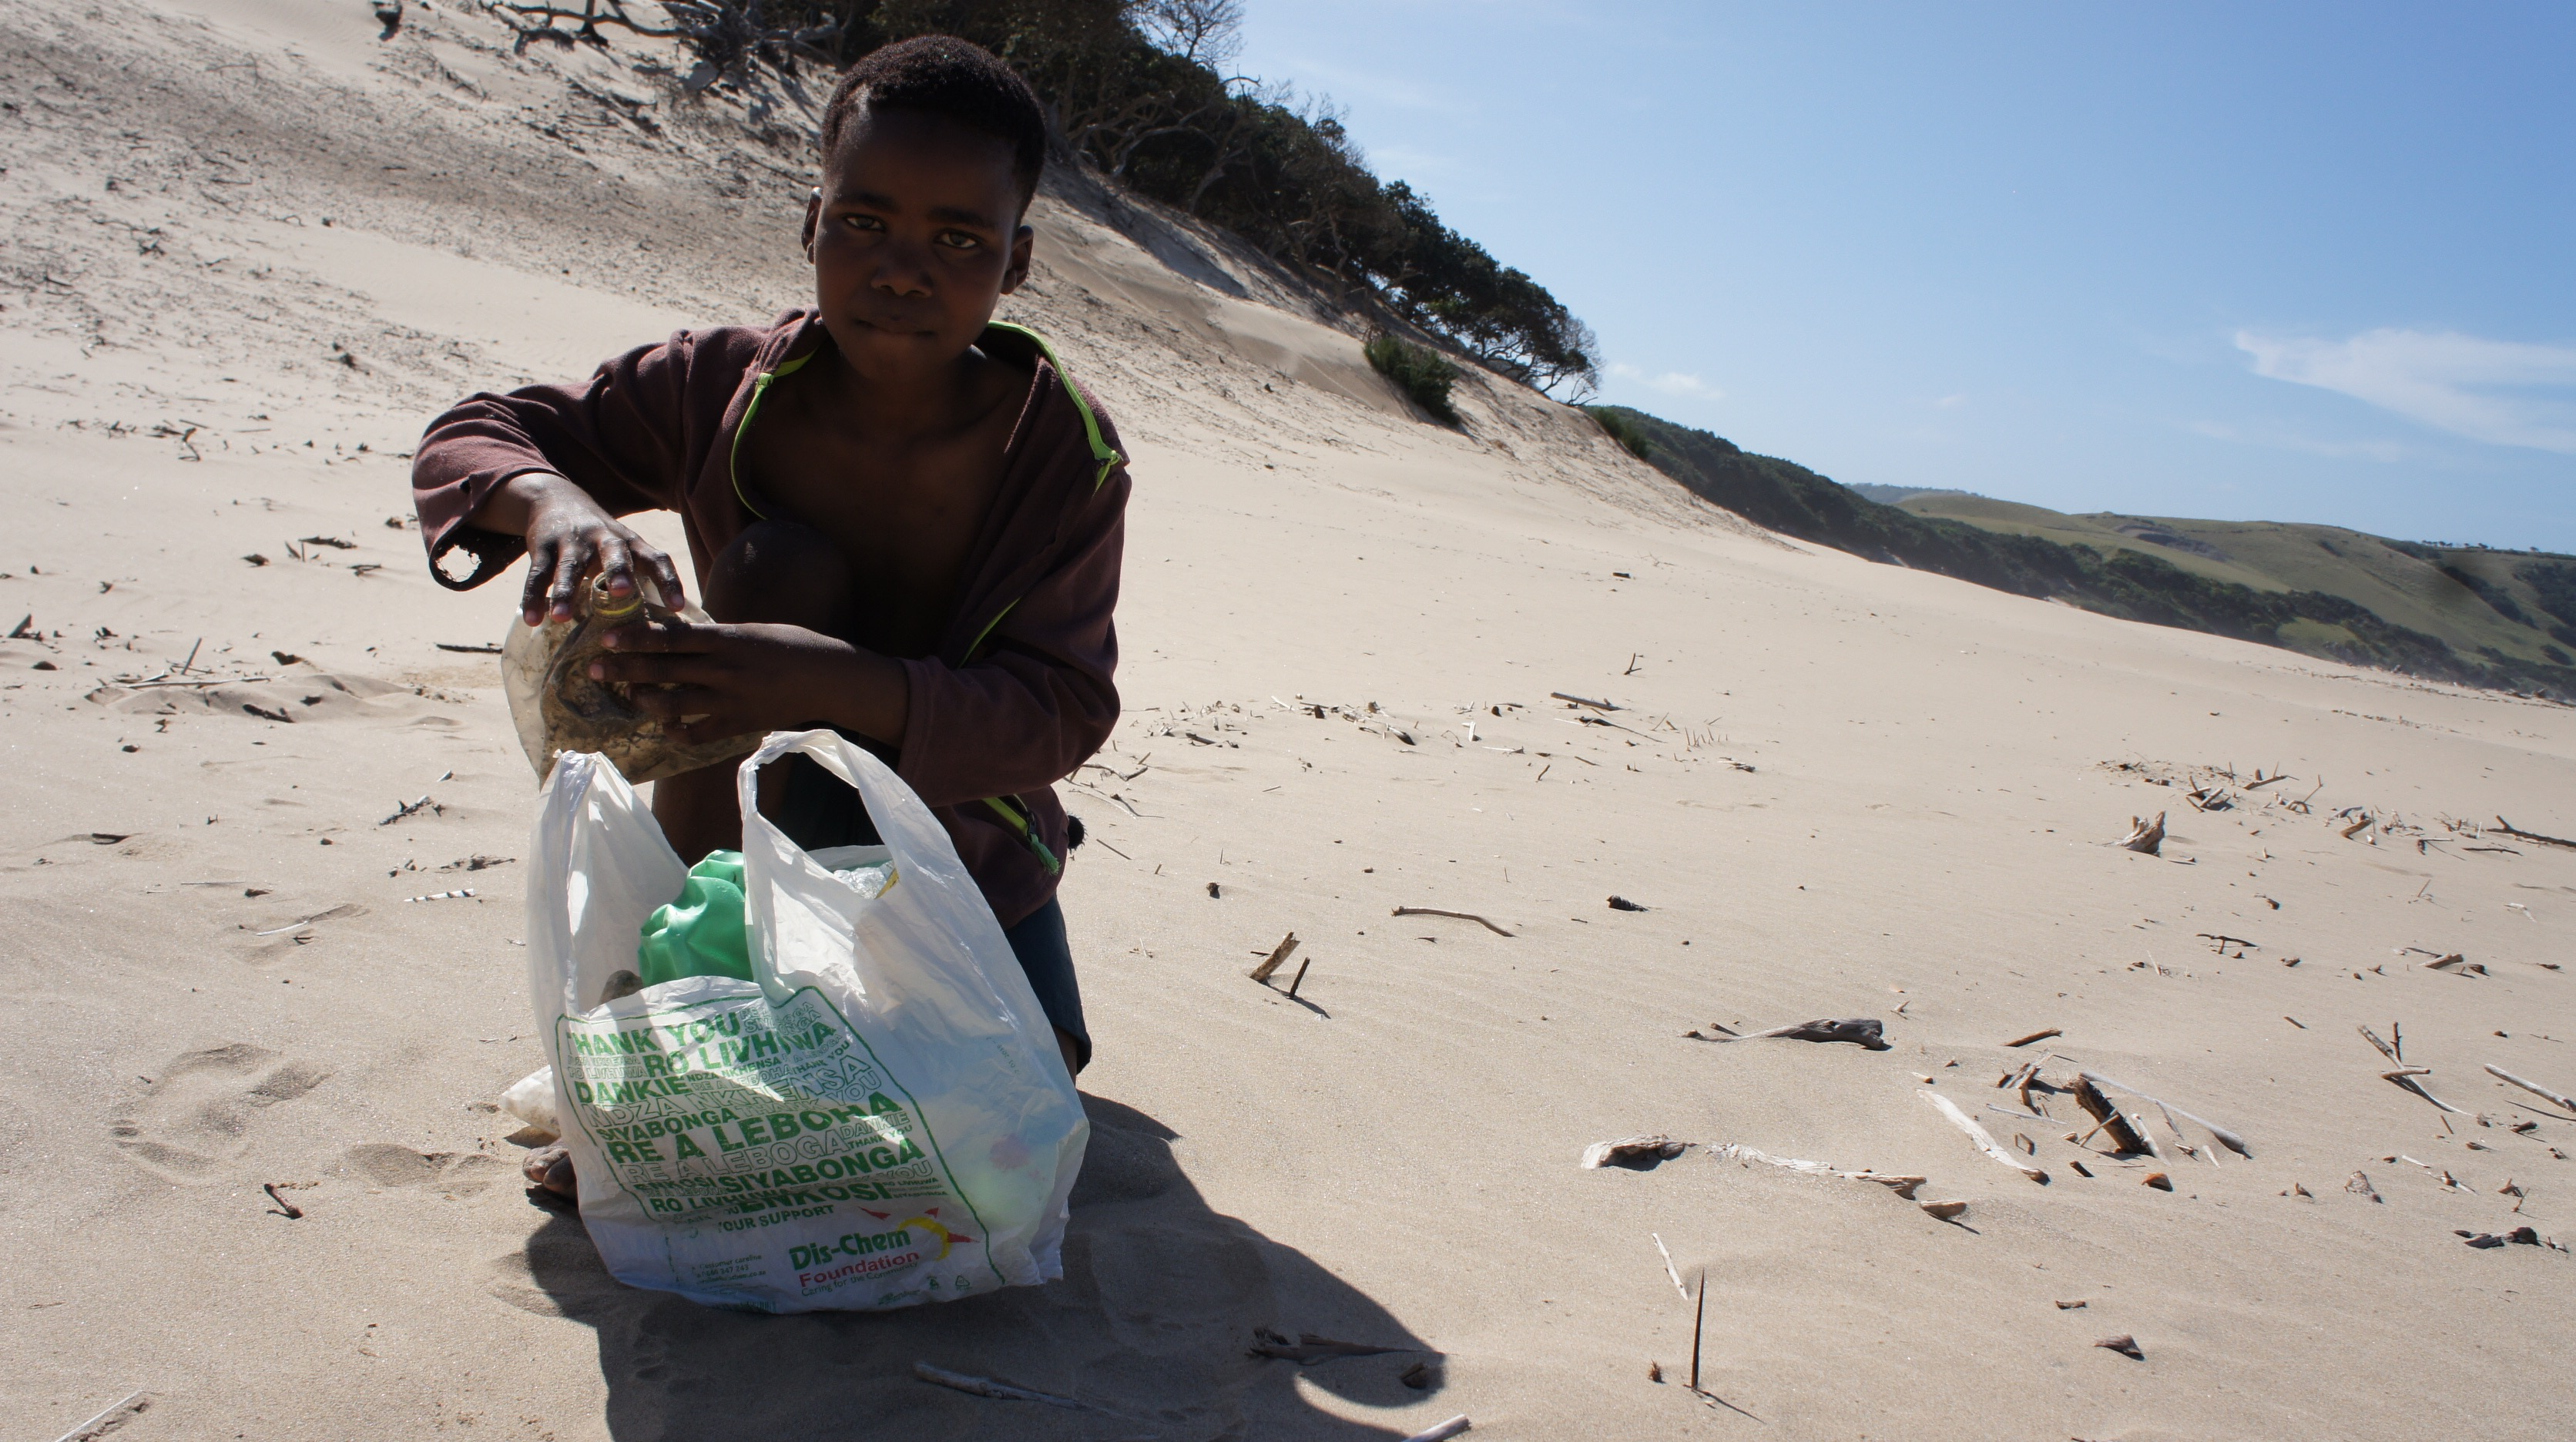 Give A Wave participant collecting trash.